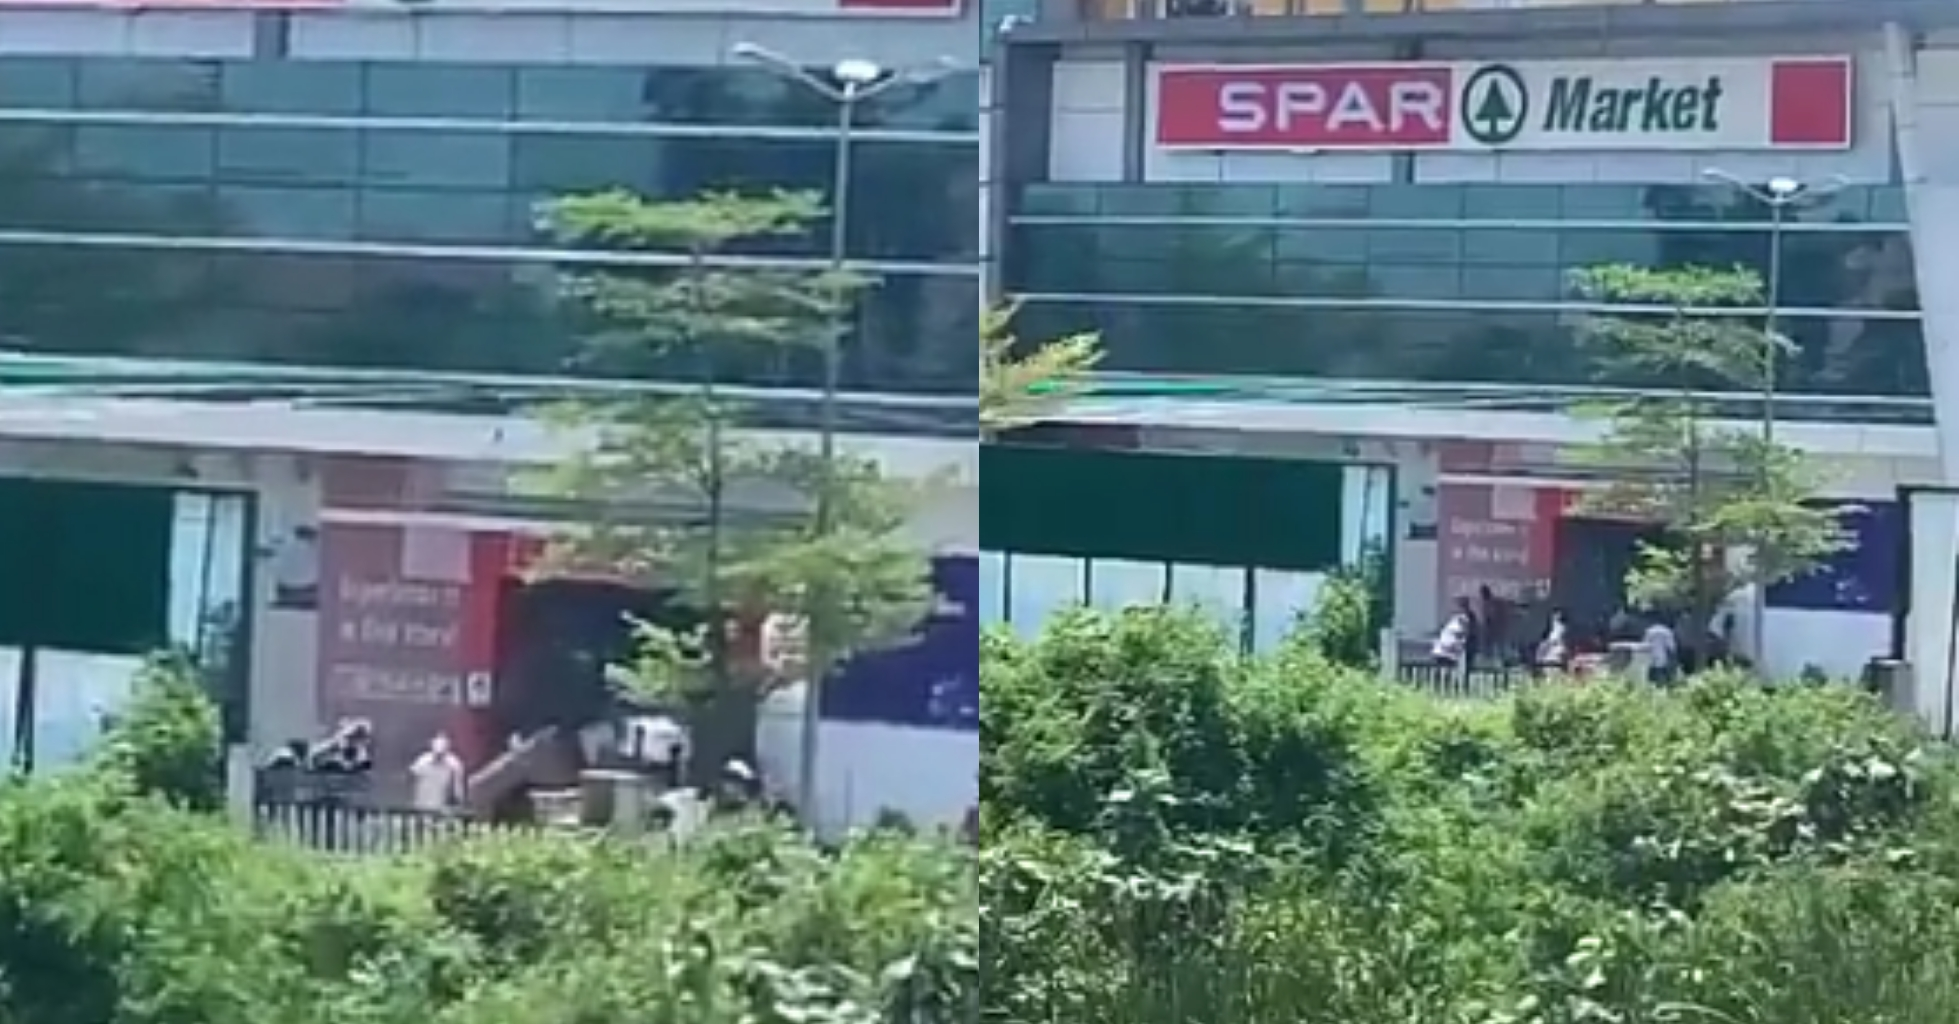 #EndSARS: Thugs allegedly loot Spar supermarket in Lekki, make out with expensive gadgets (Video)